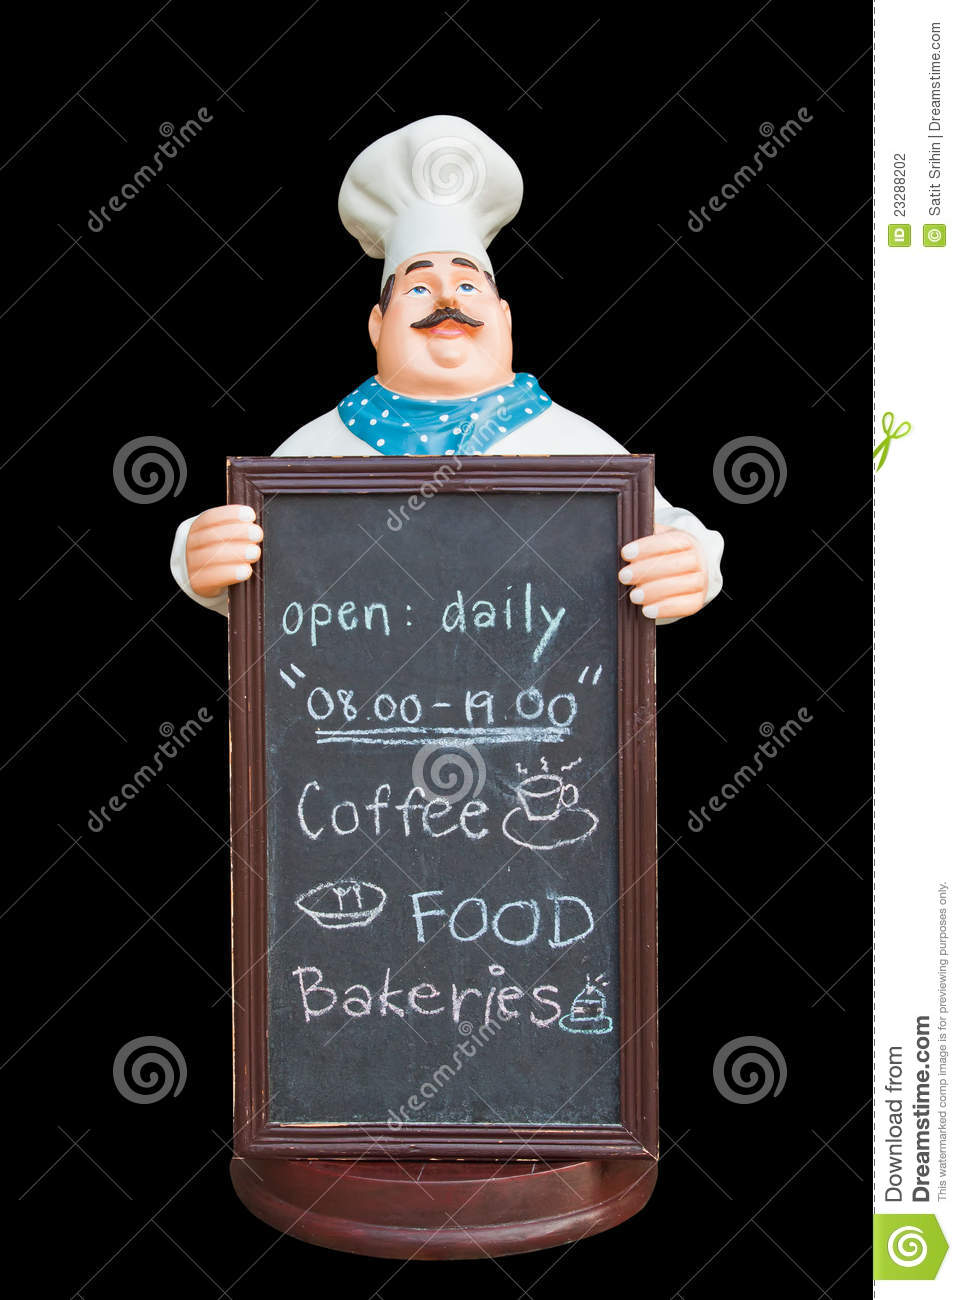 Gourmet Kitchen Appliances Doll Ceramic Chef With Chalkboard Stock Photo - Image ...